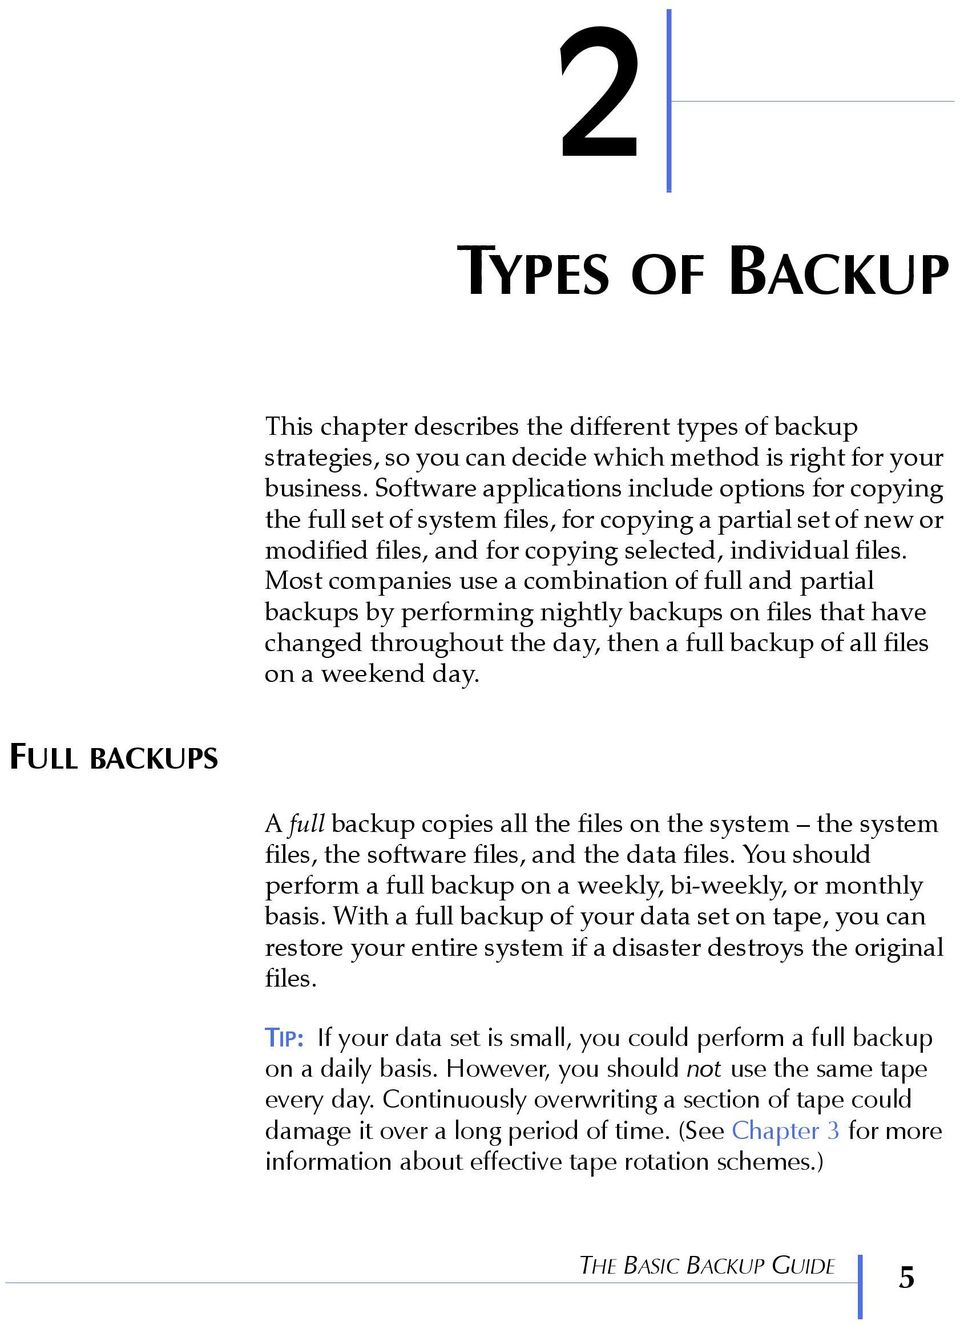 Most companies use a combination of full and partial backups by performing nightly backups on files that have changed throughout the day, then a full backup of all files on a weekend day.